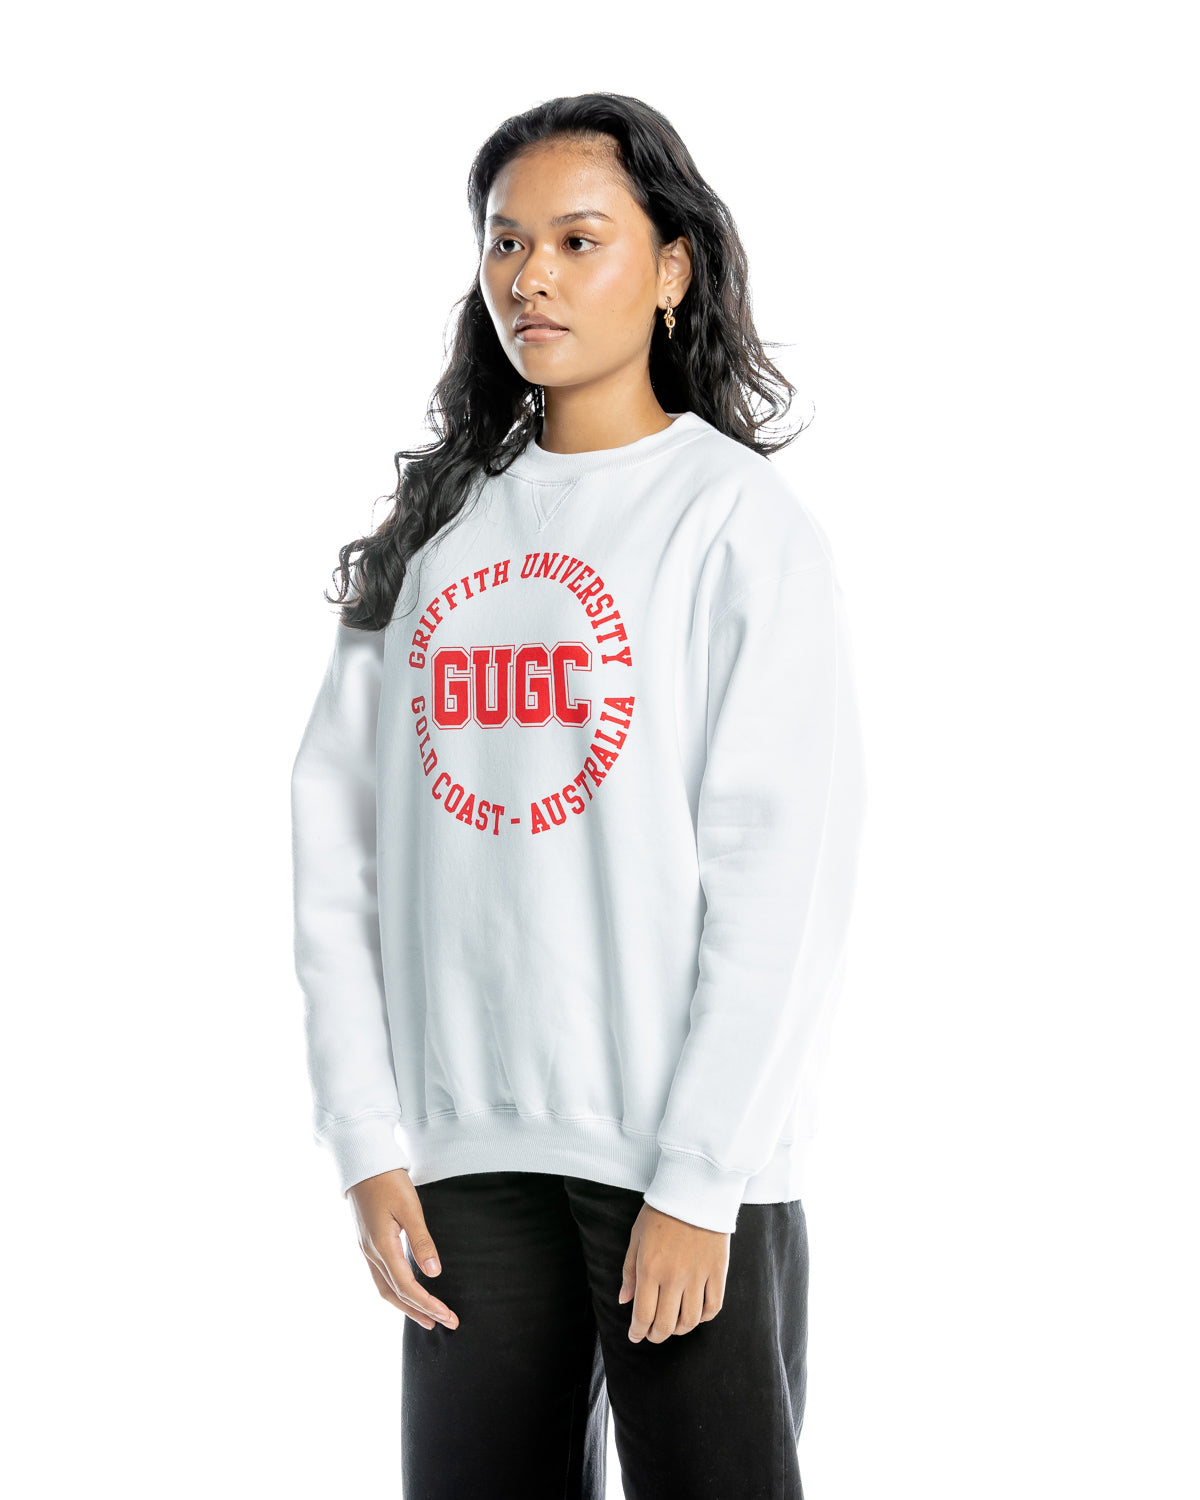 Griffith unisex white sweatshirt